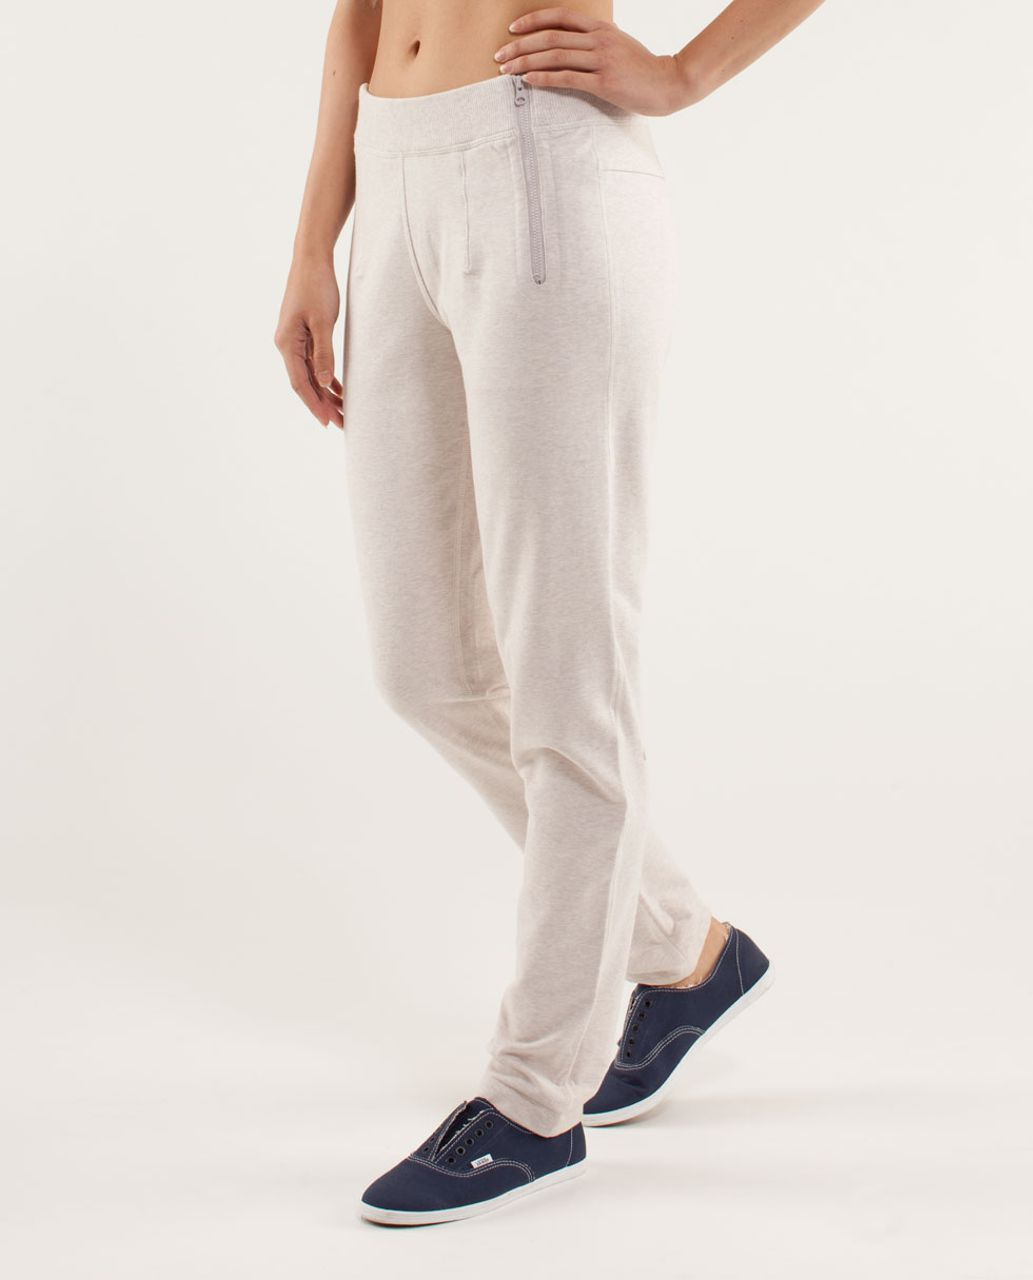 Lululemon Rejuvenate Sweat Pant - Dune